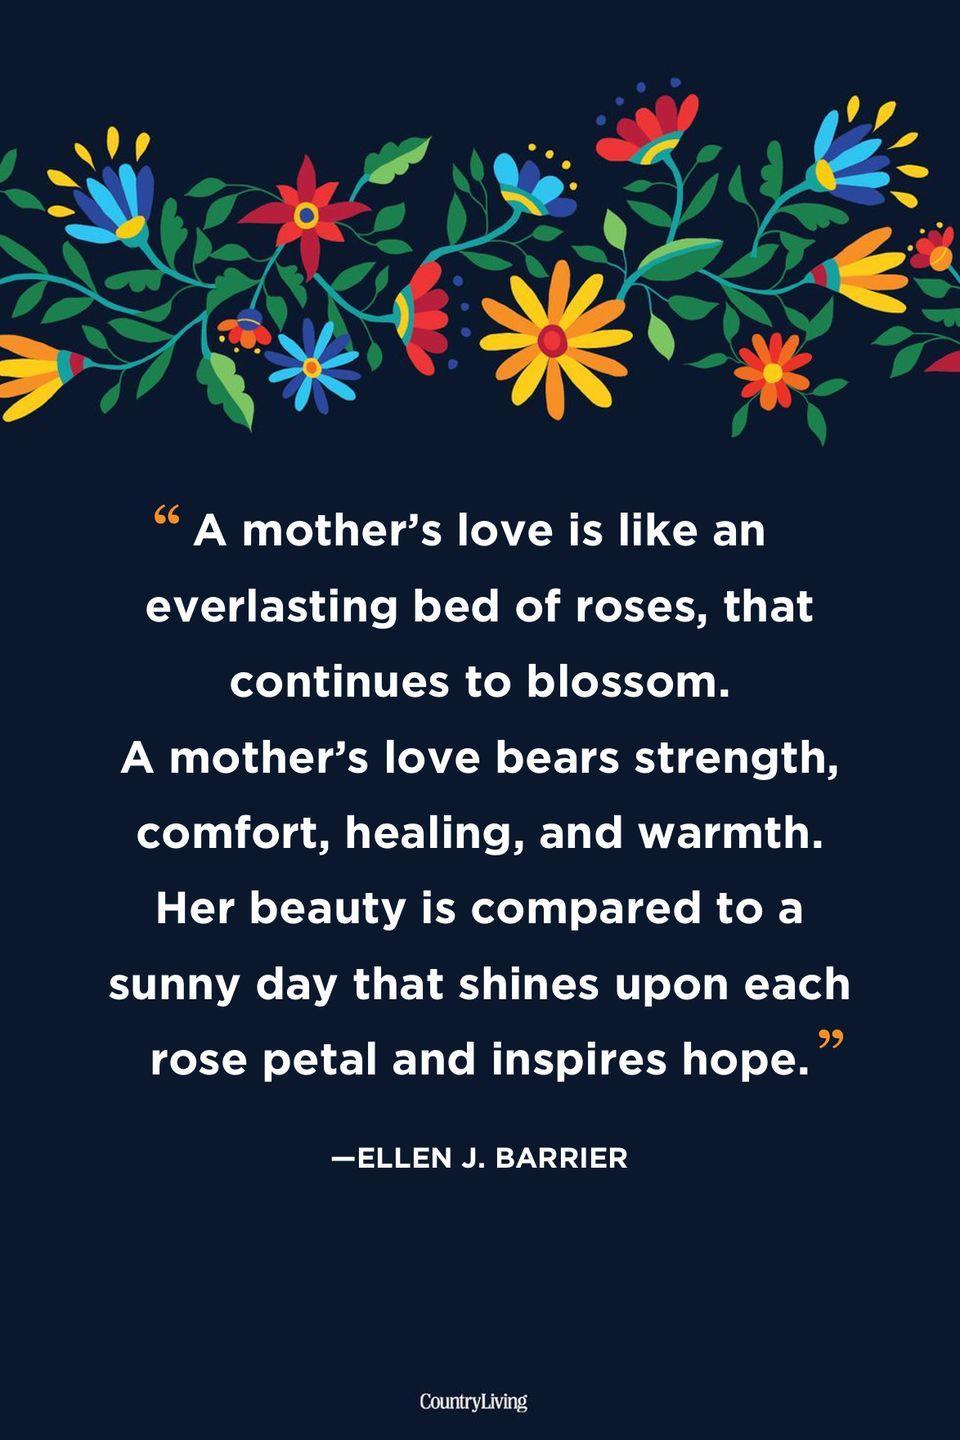 """<p>""""A mother's love is like an everlasting bed of roses, that continues to blossom. A mother's love bears strength, comfort, healing, and warmth. Her beauty is compared to a sunny day that shines upon each rose petal and inspires hope.""""</p>"""